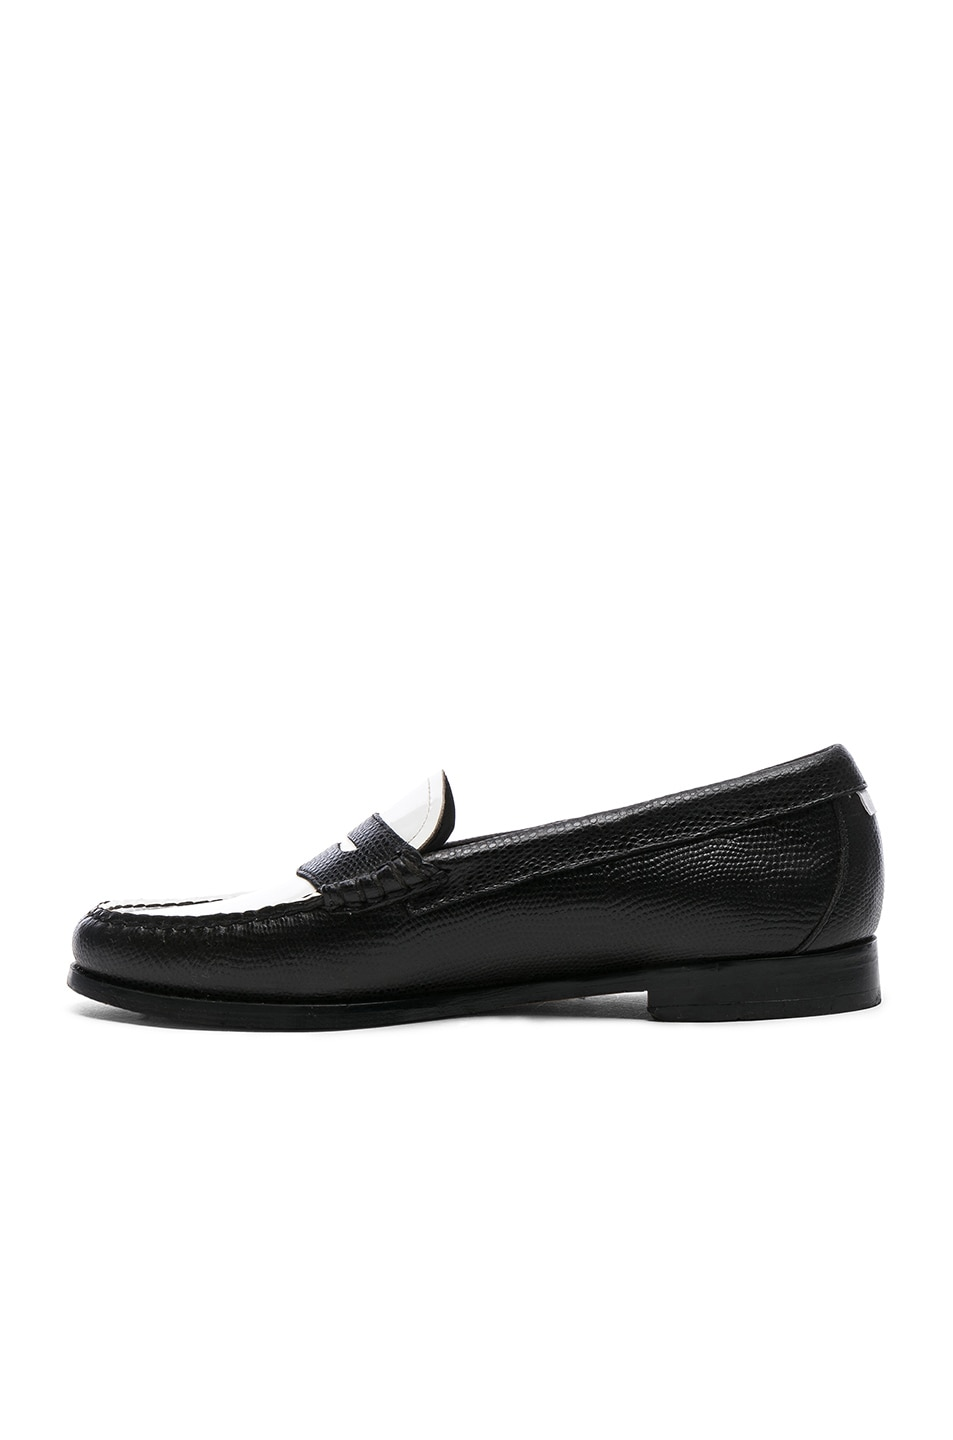 Image 5 of RE/DONE x G.H. Bass & Co. Whitney Loafer in White Patent Plug and Black Lizard Emboss